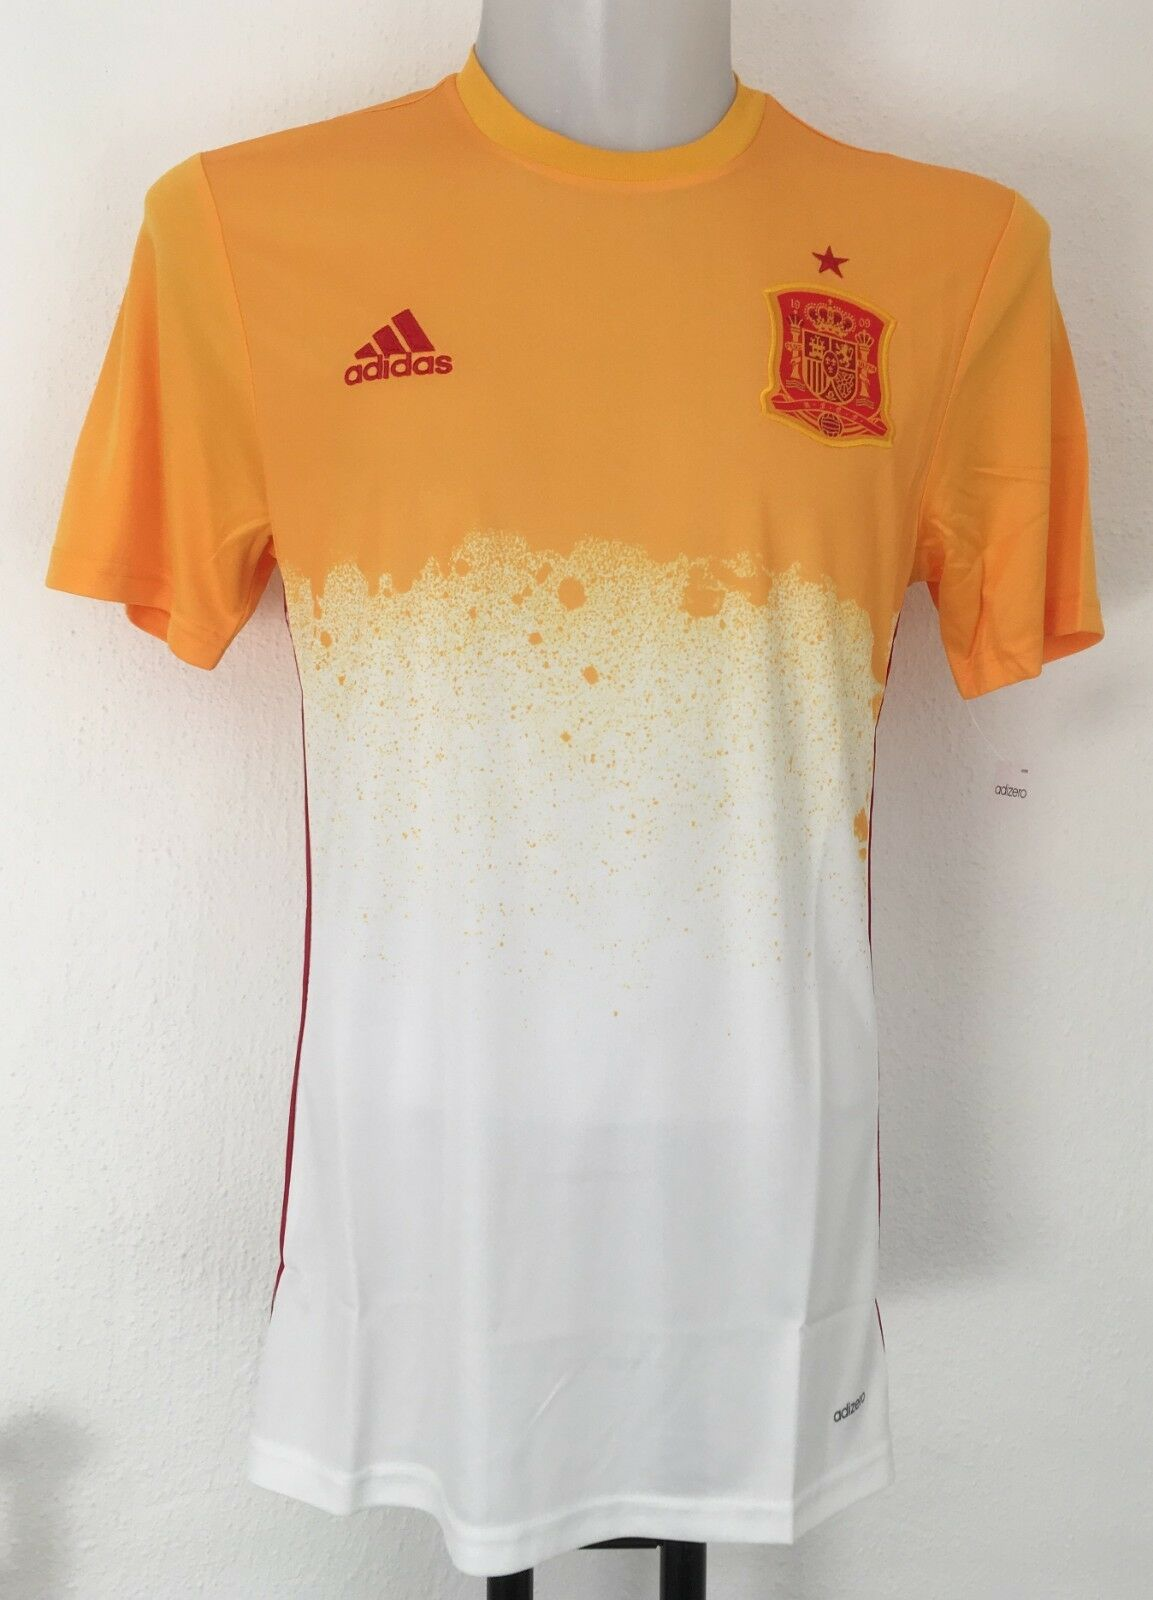 SPAIN FOOTBALL 2016 S S AWAY PRE-MATCH SHIRT BY ADIDAS SIZE MEN'S EXTRA SMALL